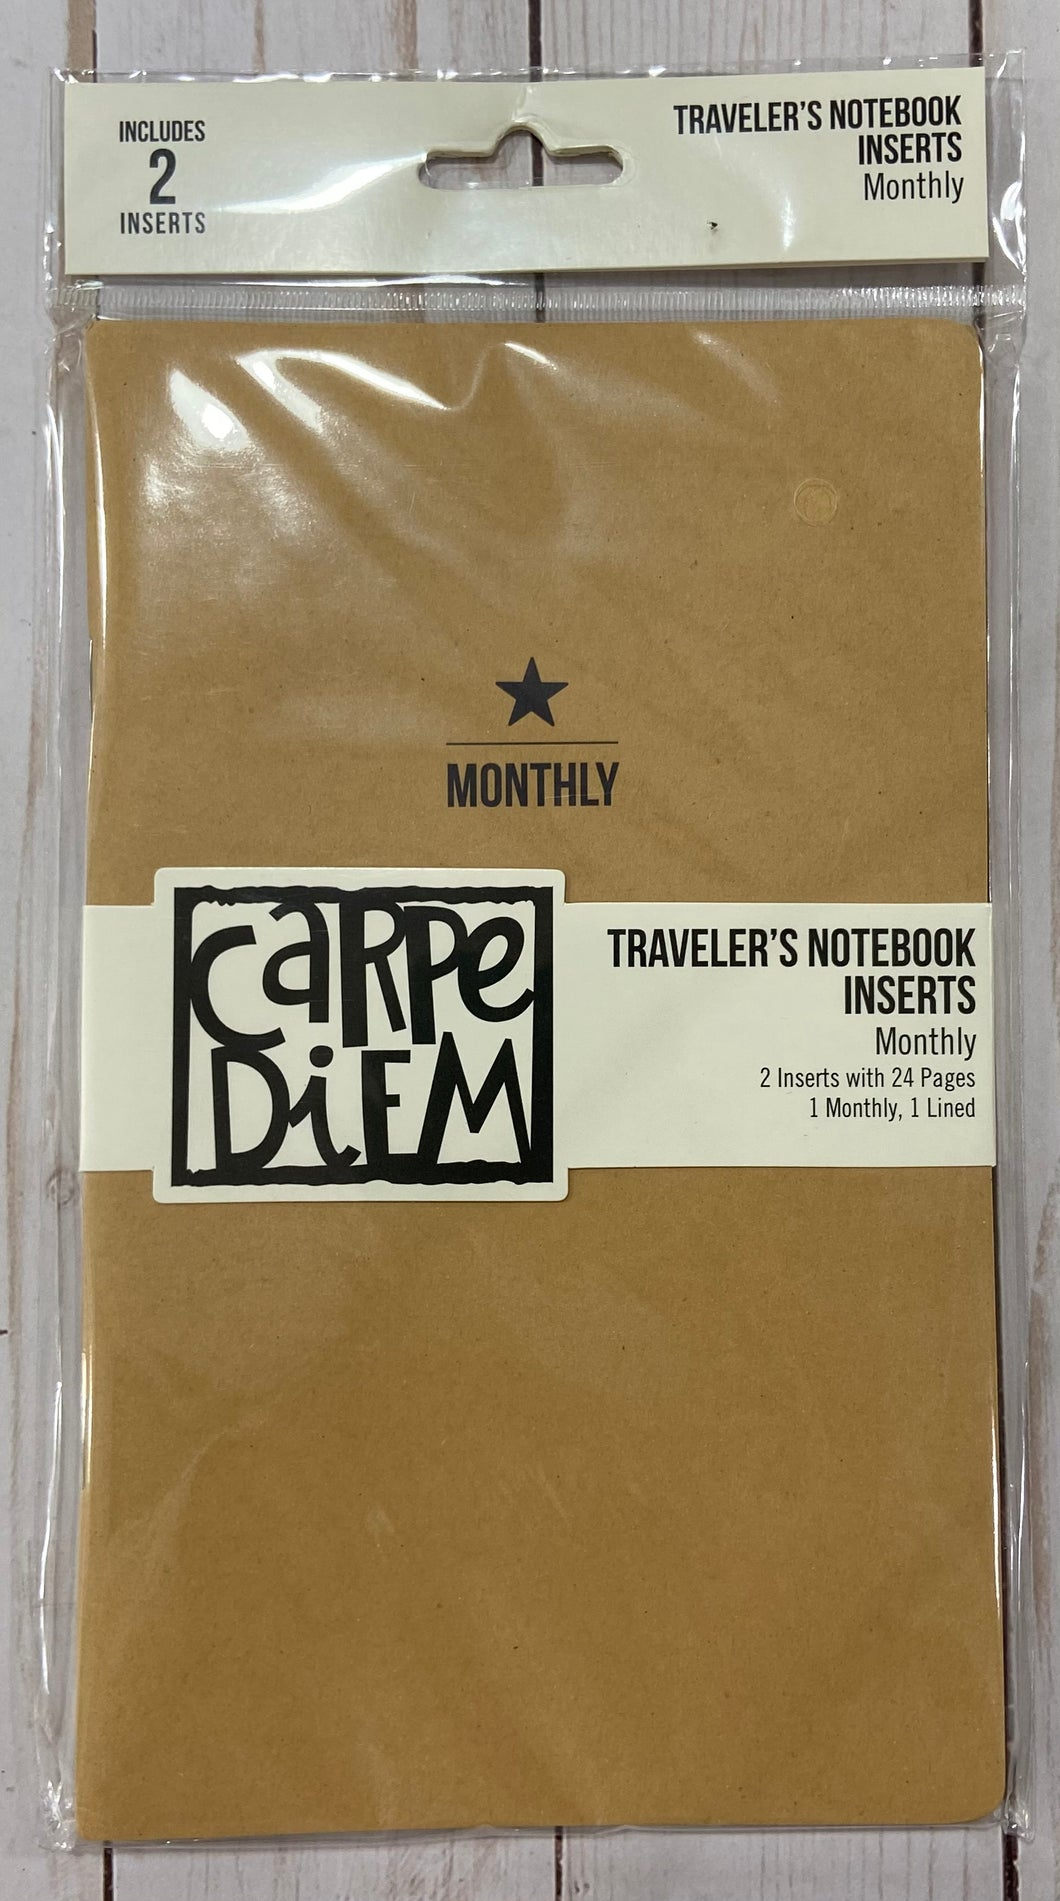 Carpe Diem TN monthly inserts